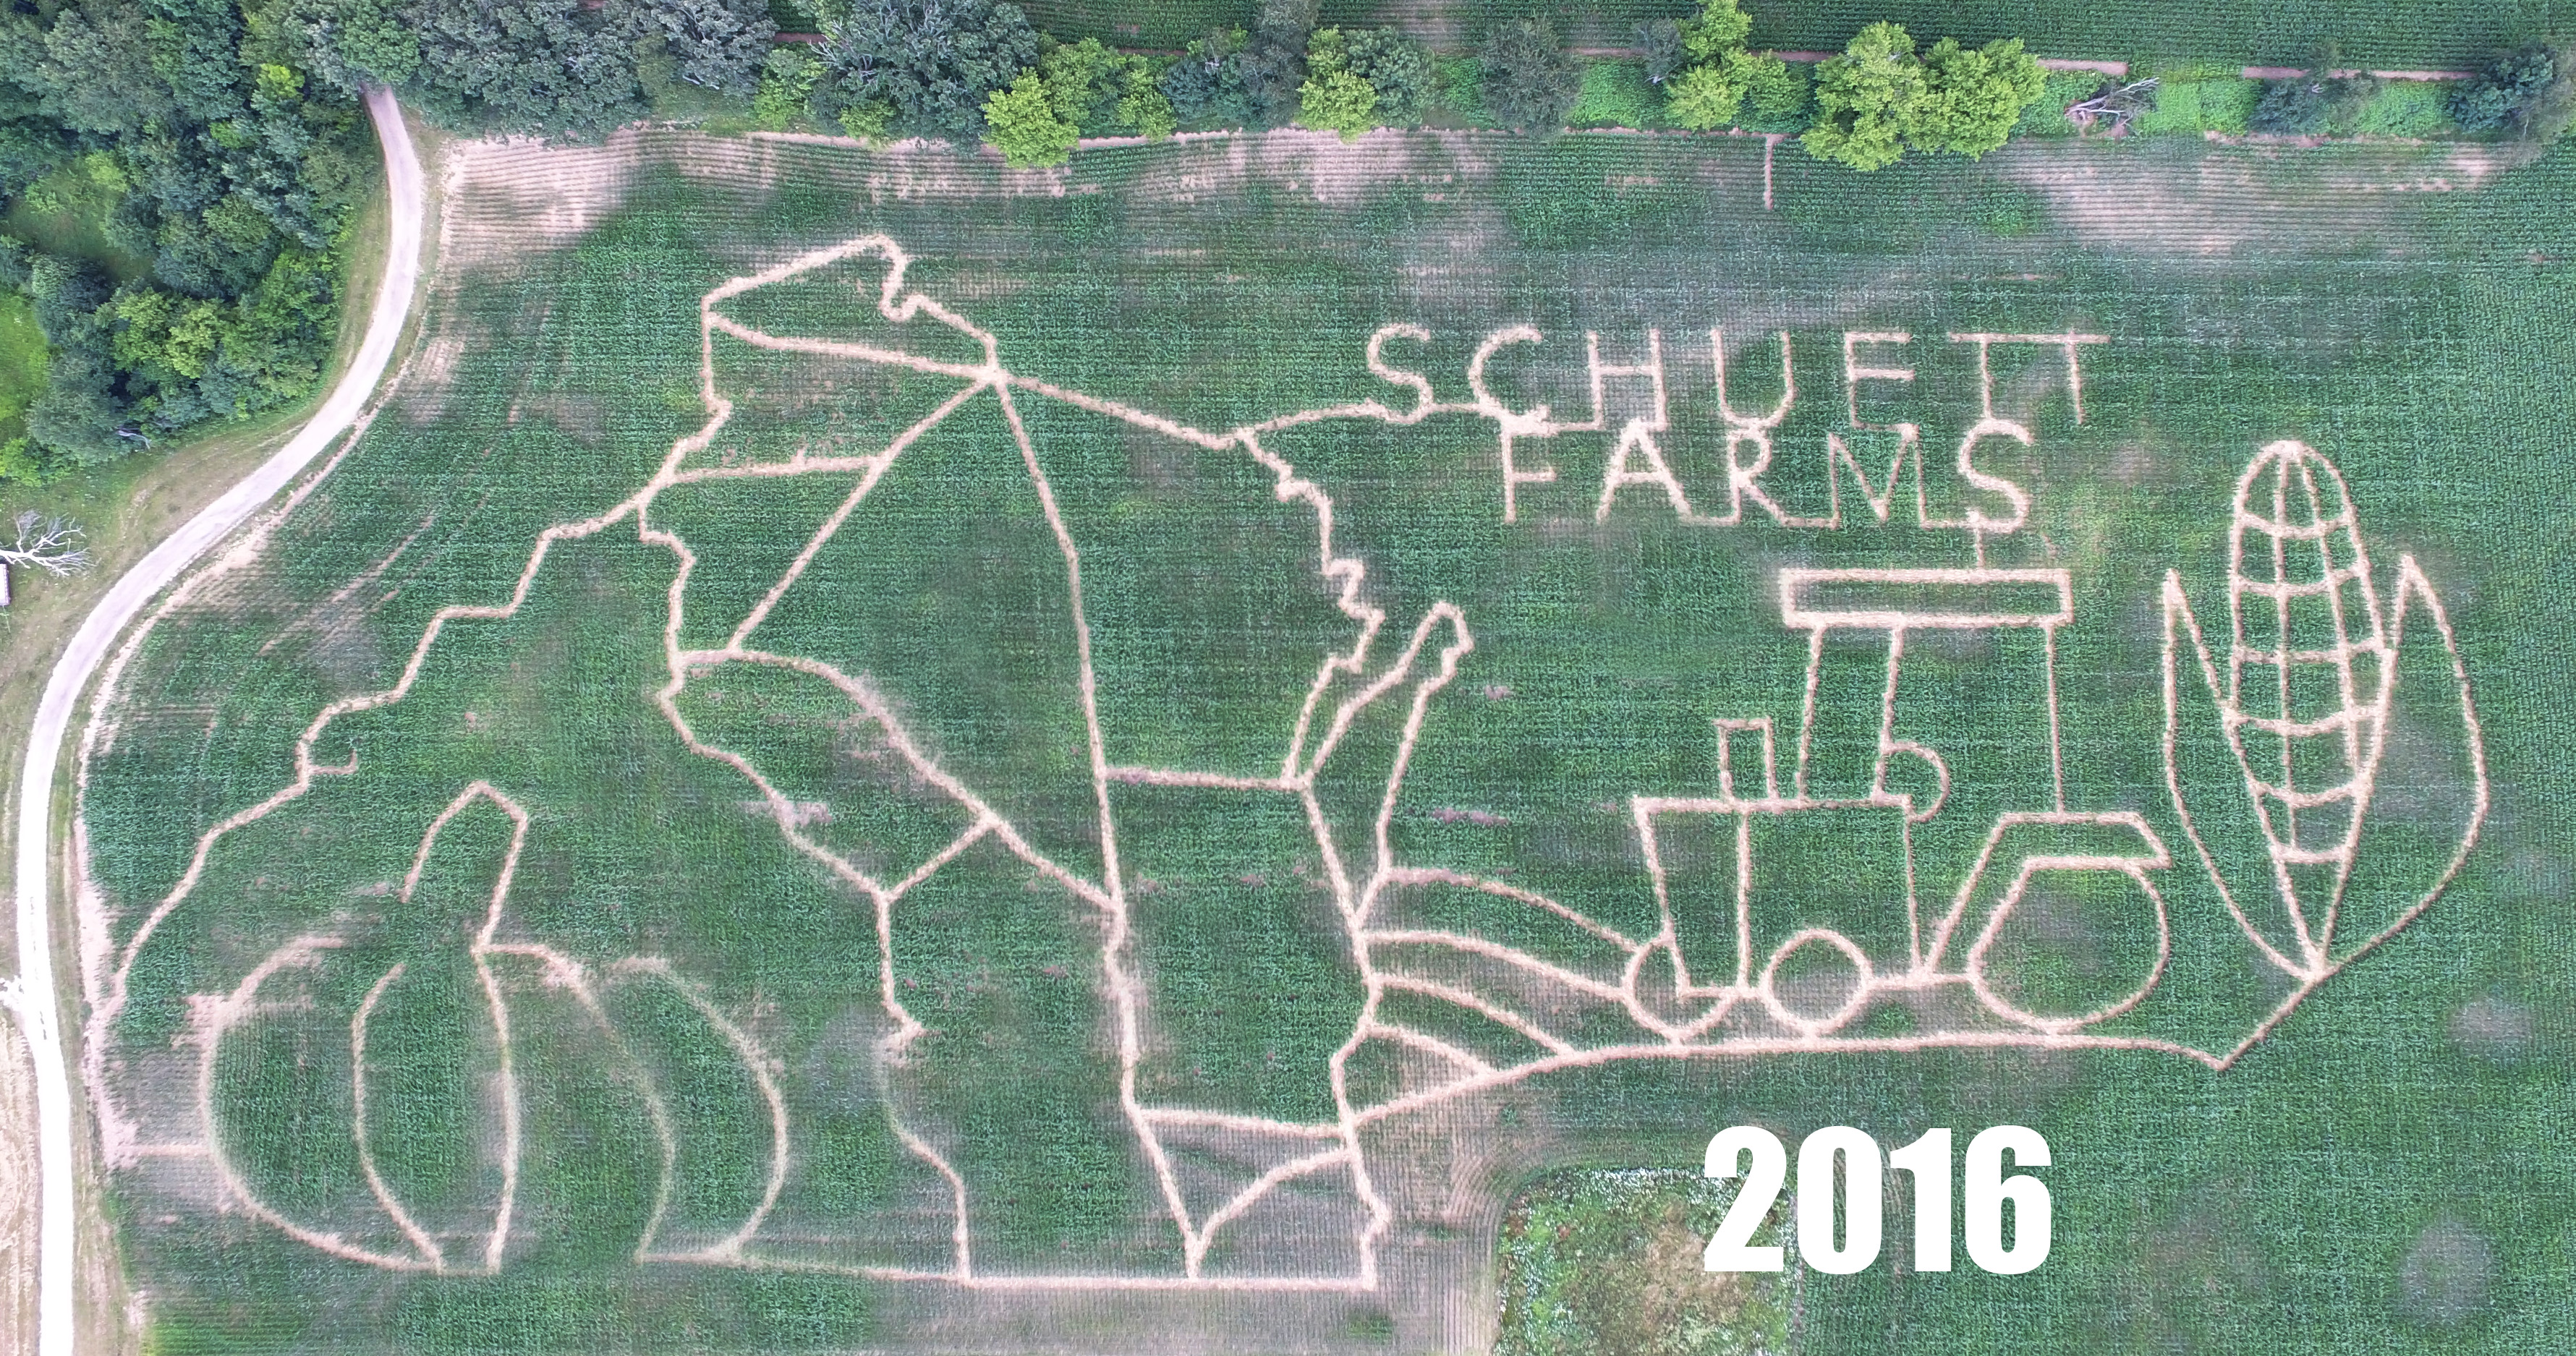 This is a picture of the best corn maze in Wisconsin